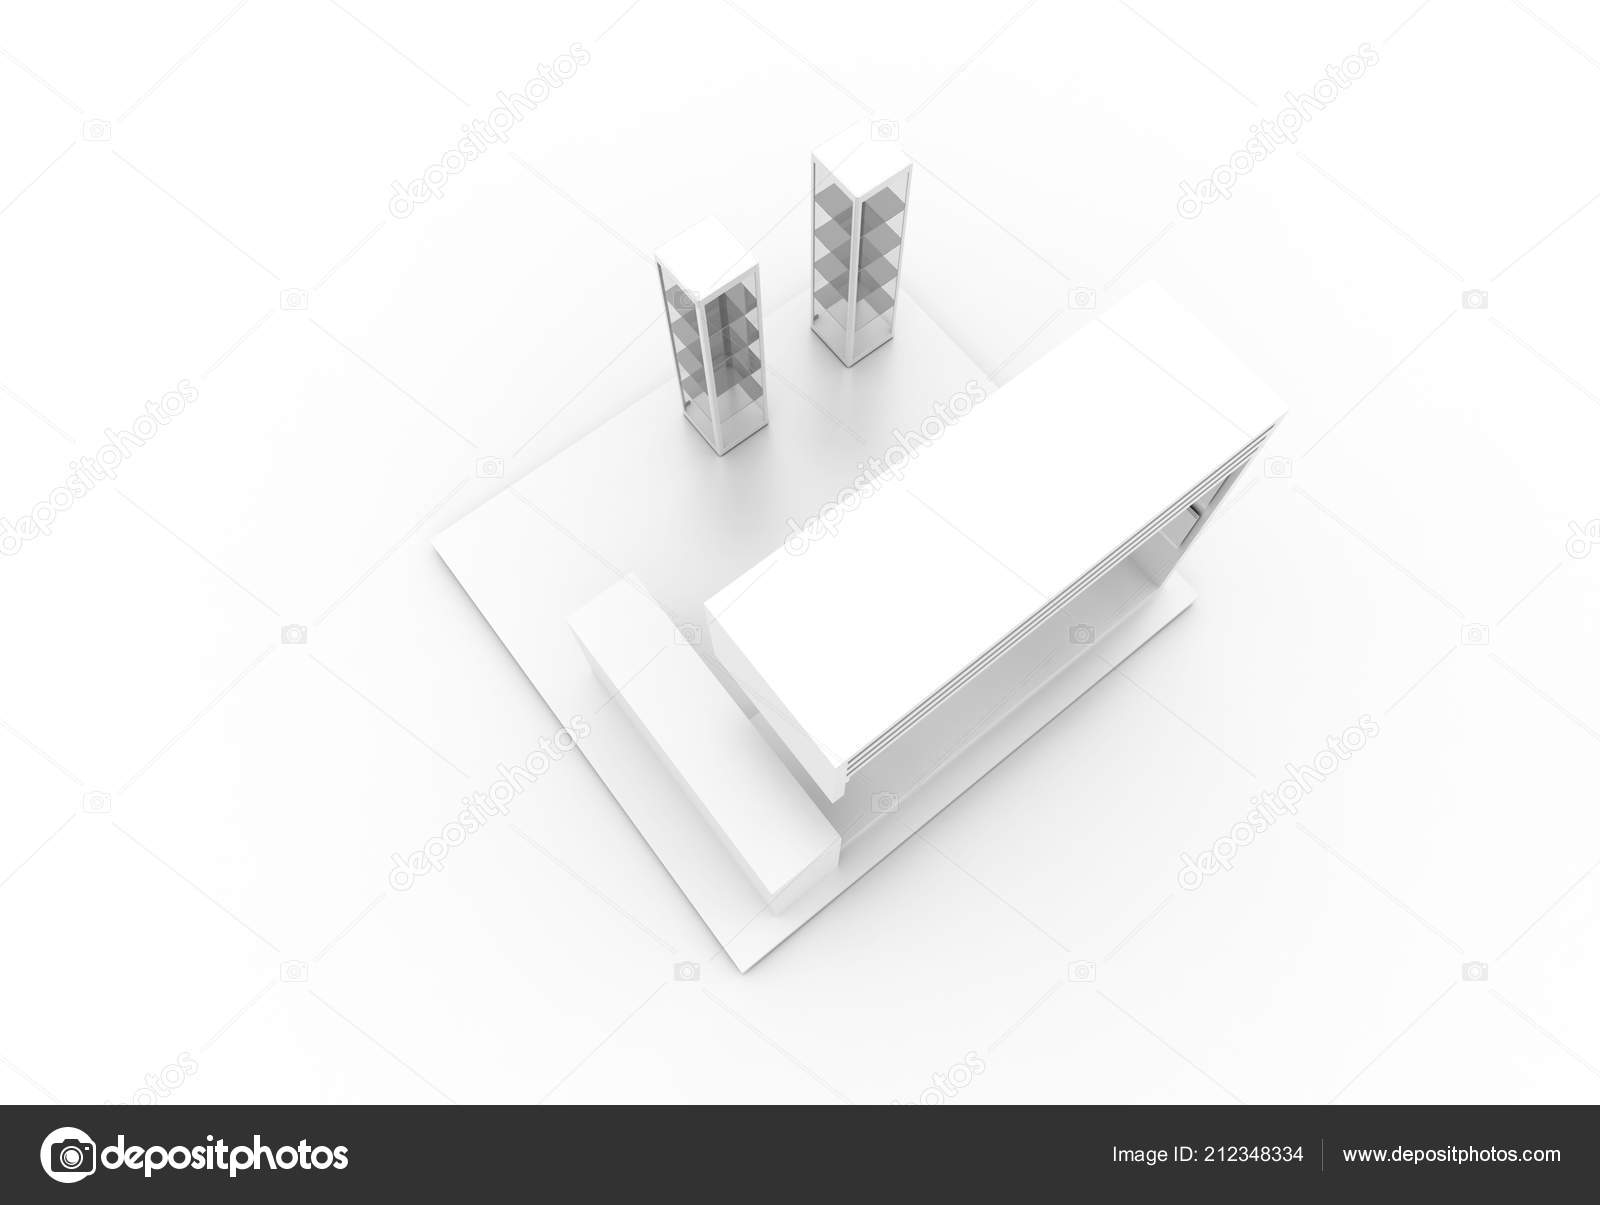 Exhibition Stand Drawing : Exhibition stand white original rendering models u2014 stock photo